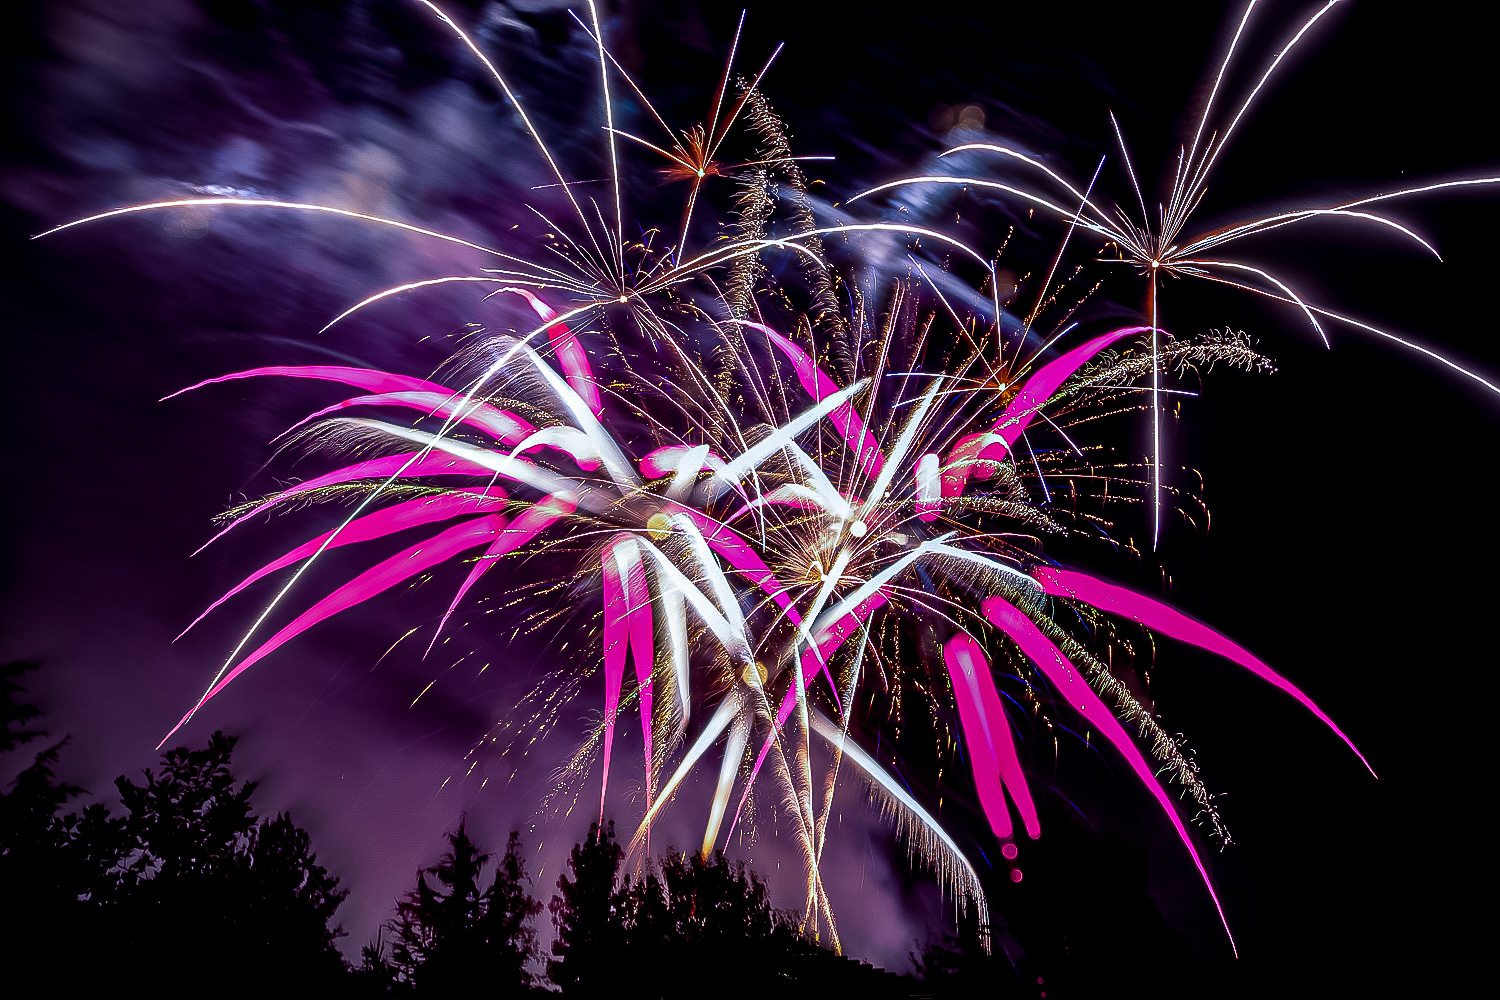 2 - How to Edit Fireworks Photos